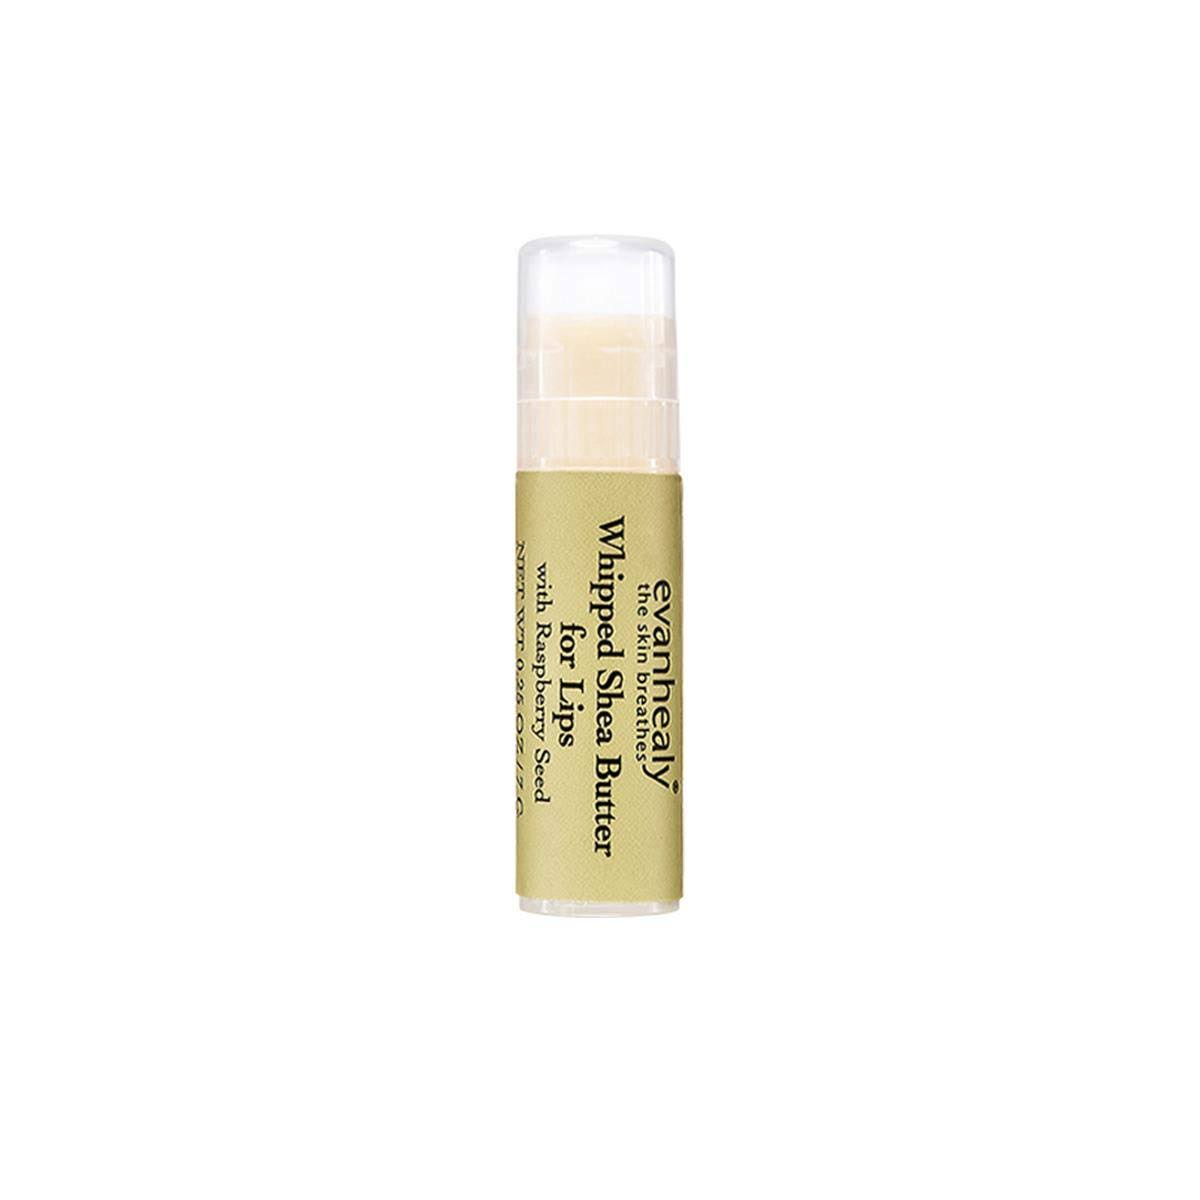 Evanhealy Whipped Shea Butter for Lips 0.25oz